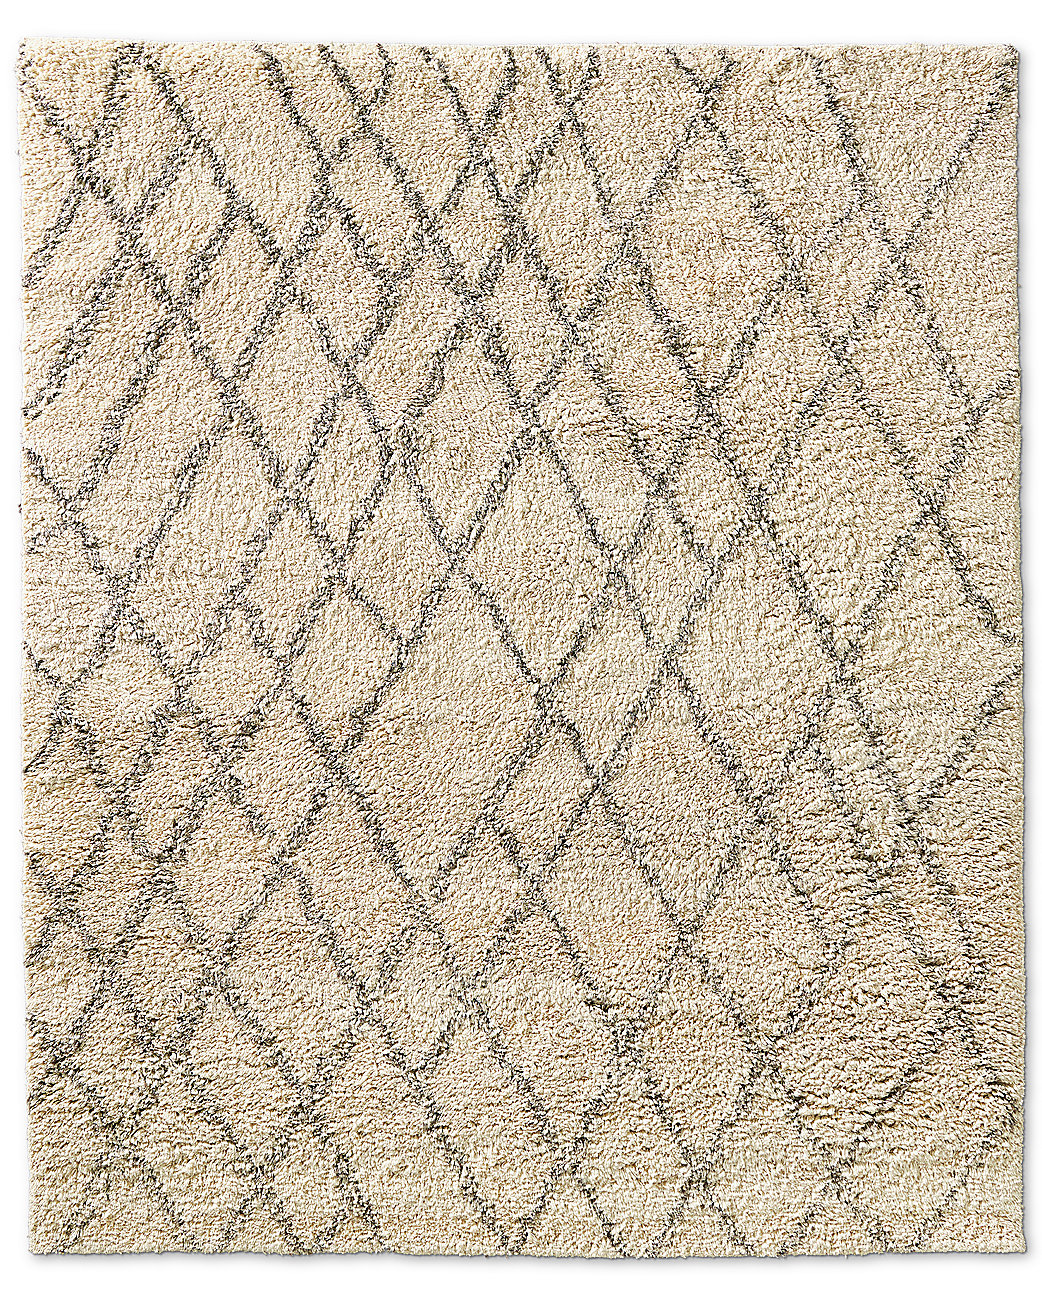 Noura Moroccan High Pile Wool Rug Ivory